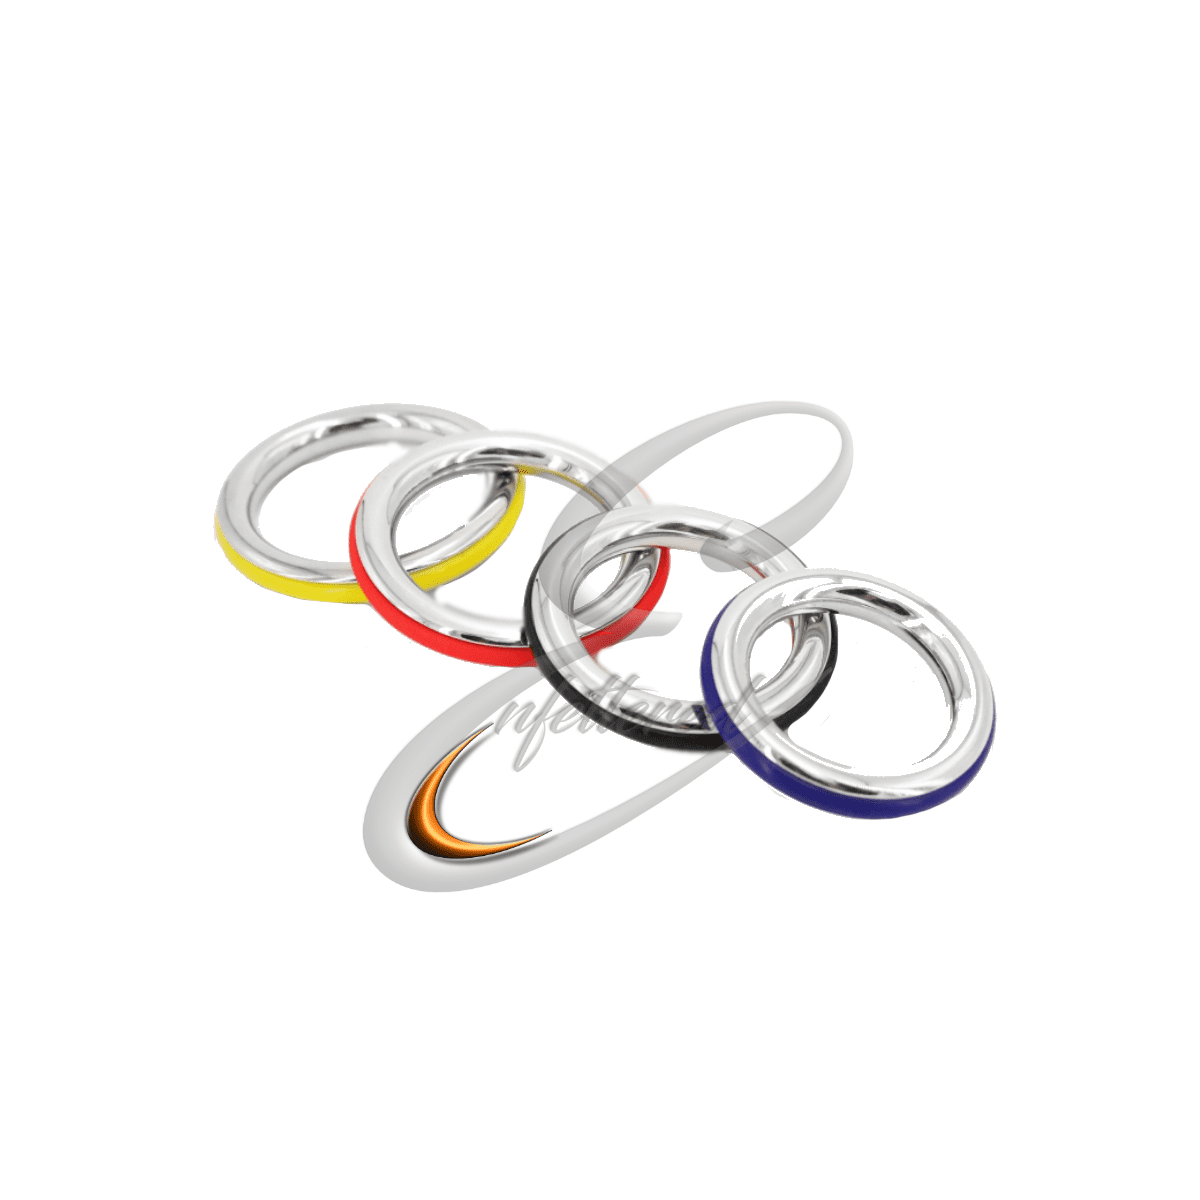 Enfettered Stainless Steel & Silicone Cock Ring